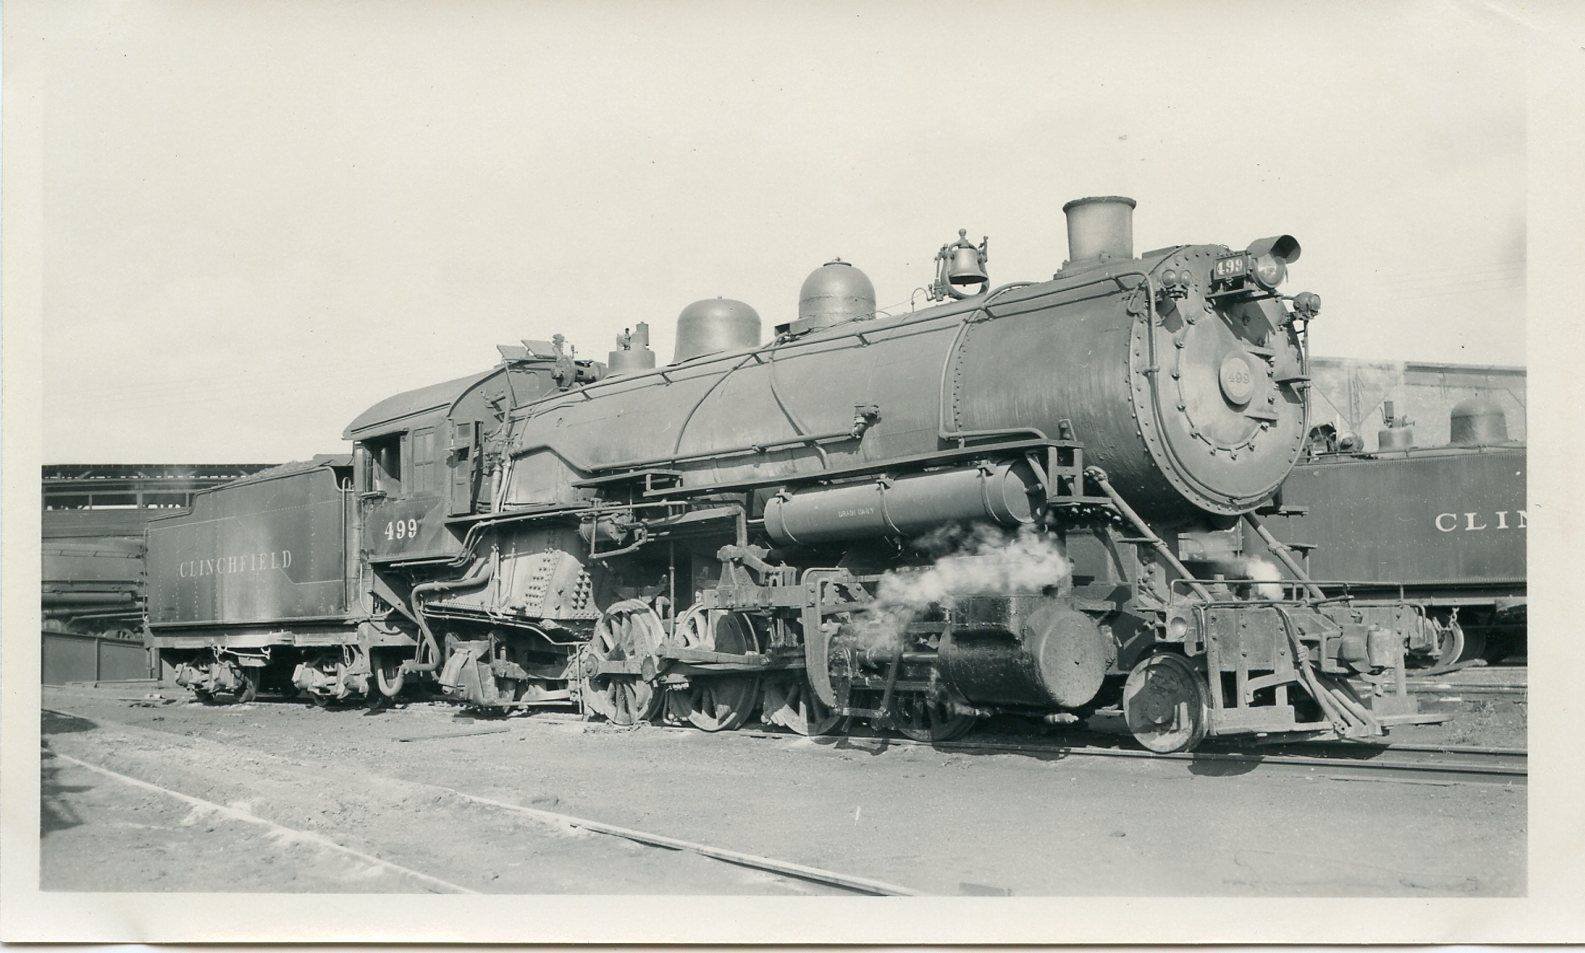 Clinchfield Railroad Engine